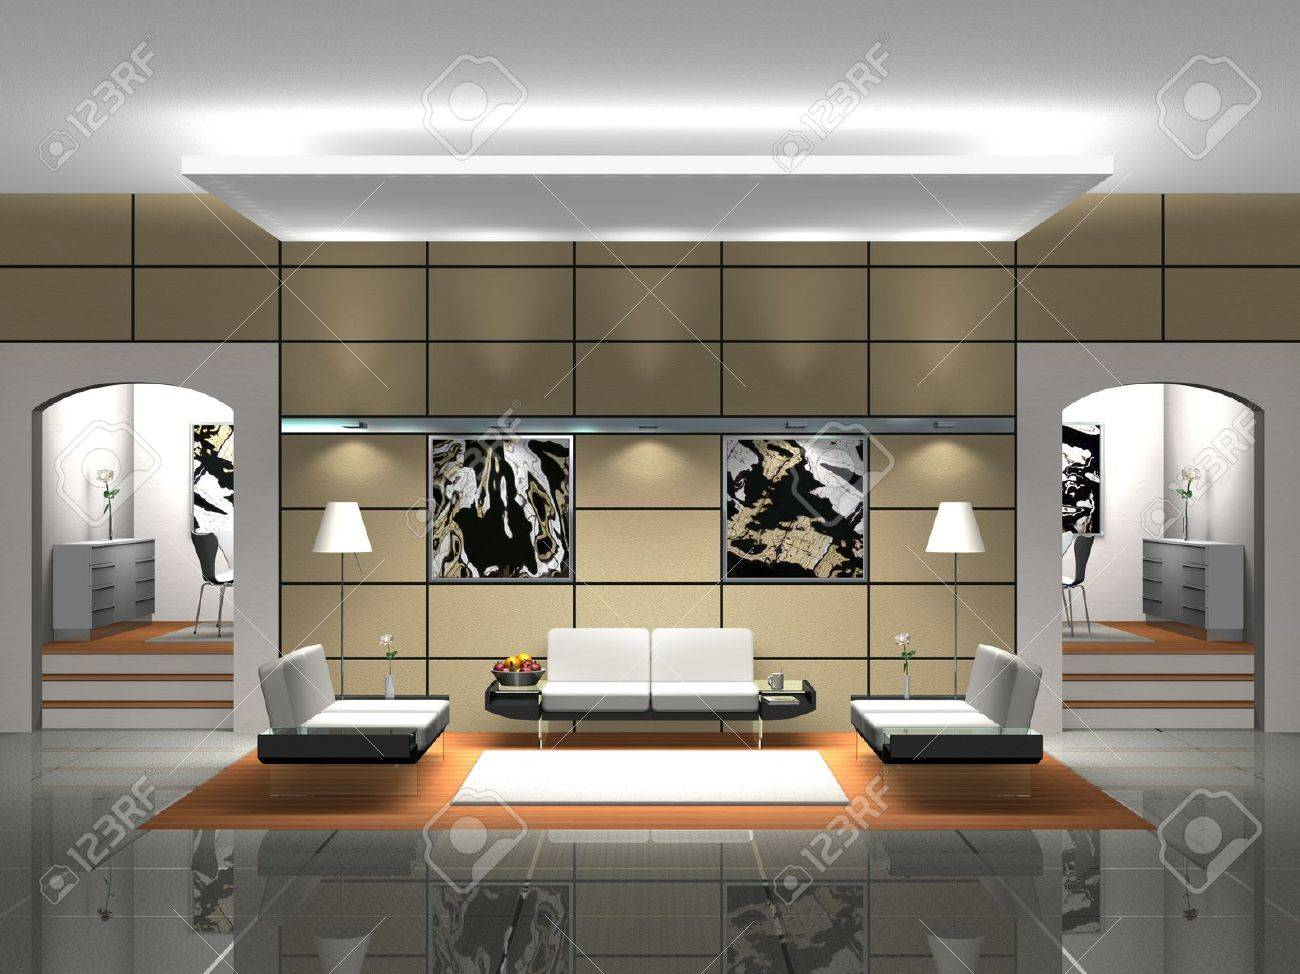 Living Room Ceiling Design Ceiling Design Stock Photos Pictures Royalty Free Ceiling